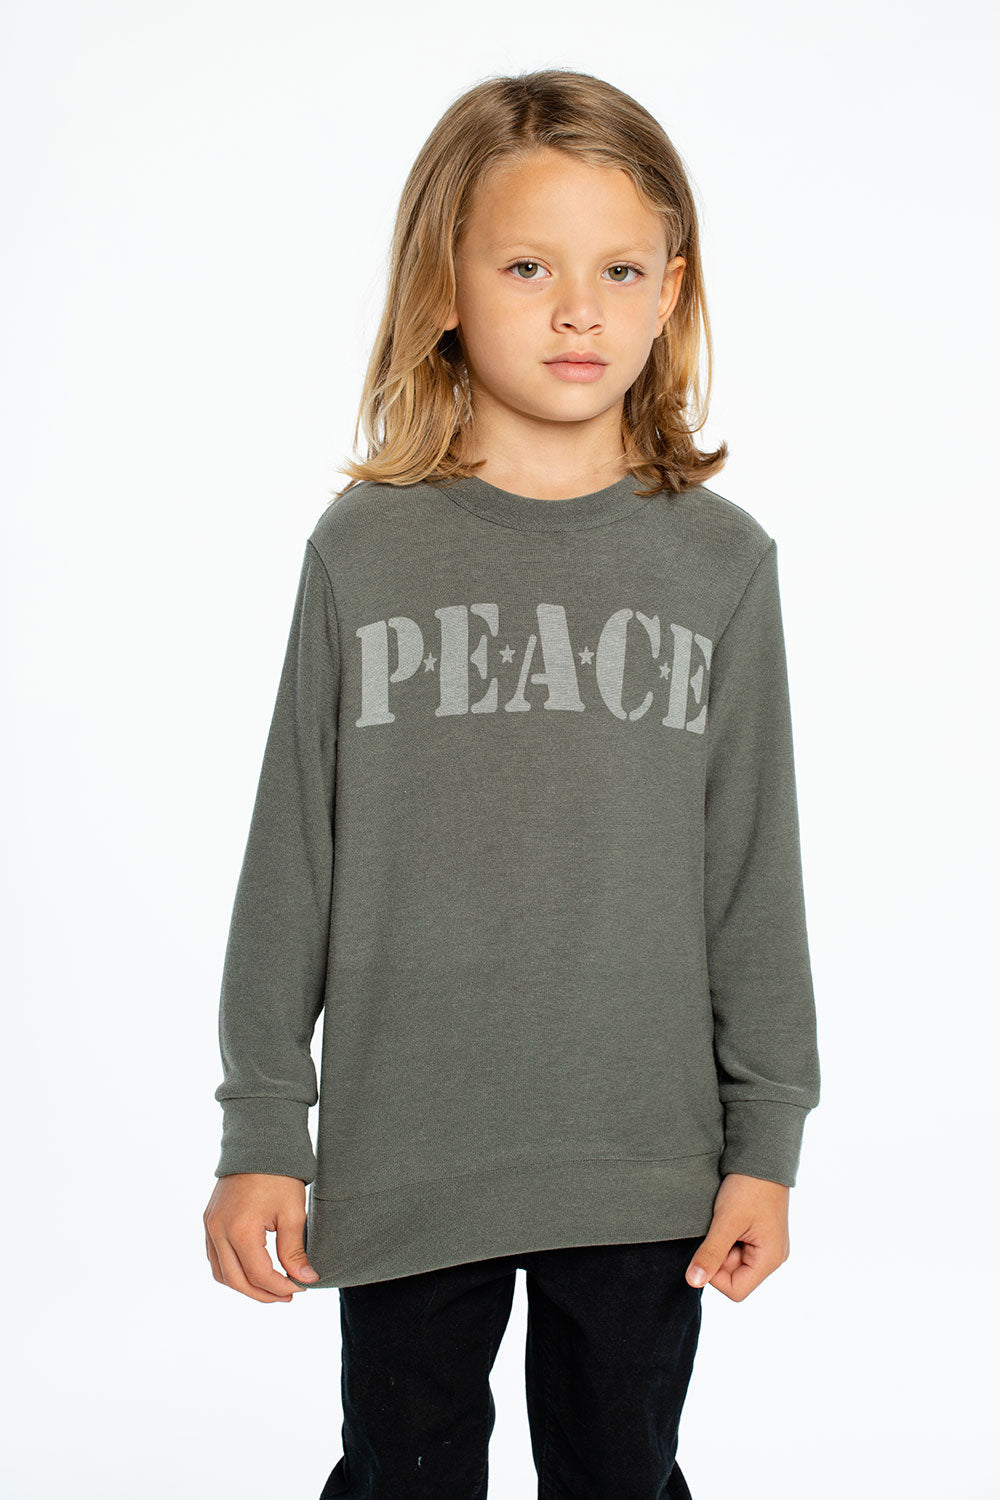 Peace, BOYS, chaserbrand.com,chaser clothing,chaser apparel,chaser los angeles